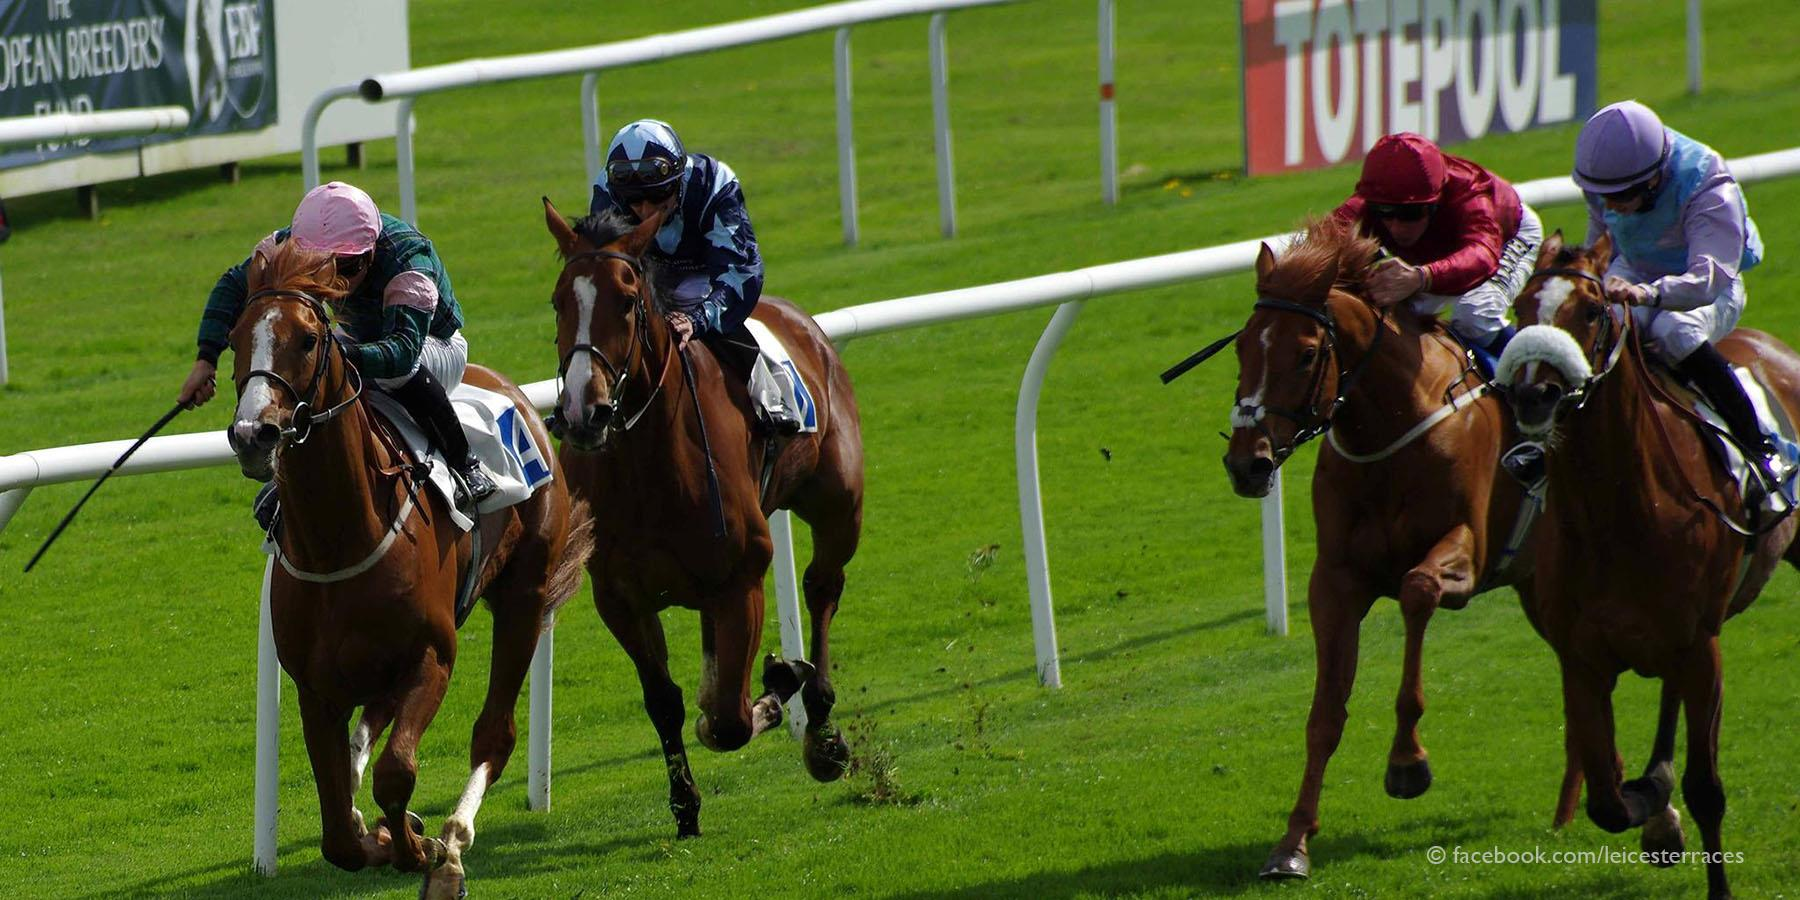 Leicester Racecourse - Sports and recreation in Leicester